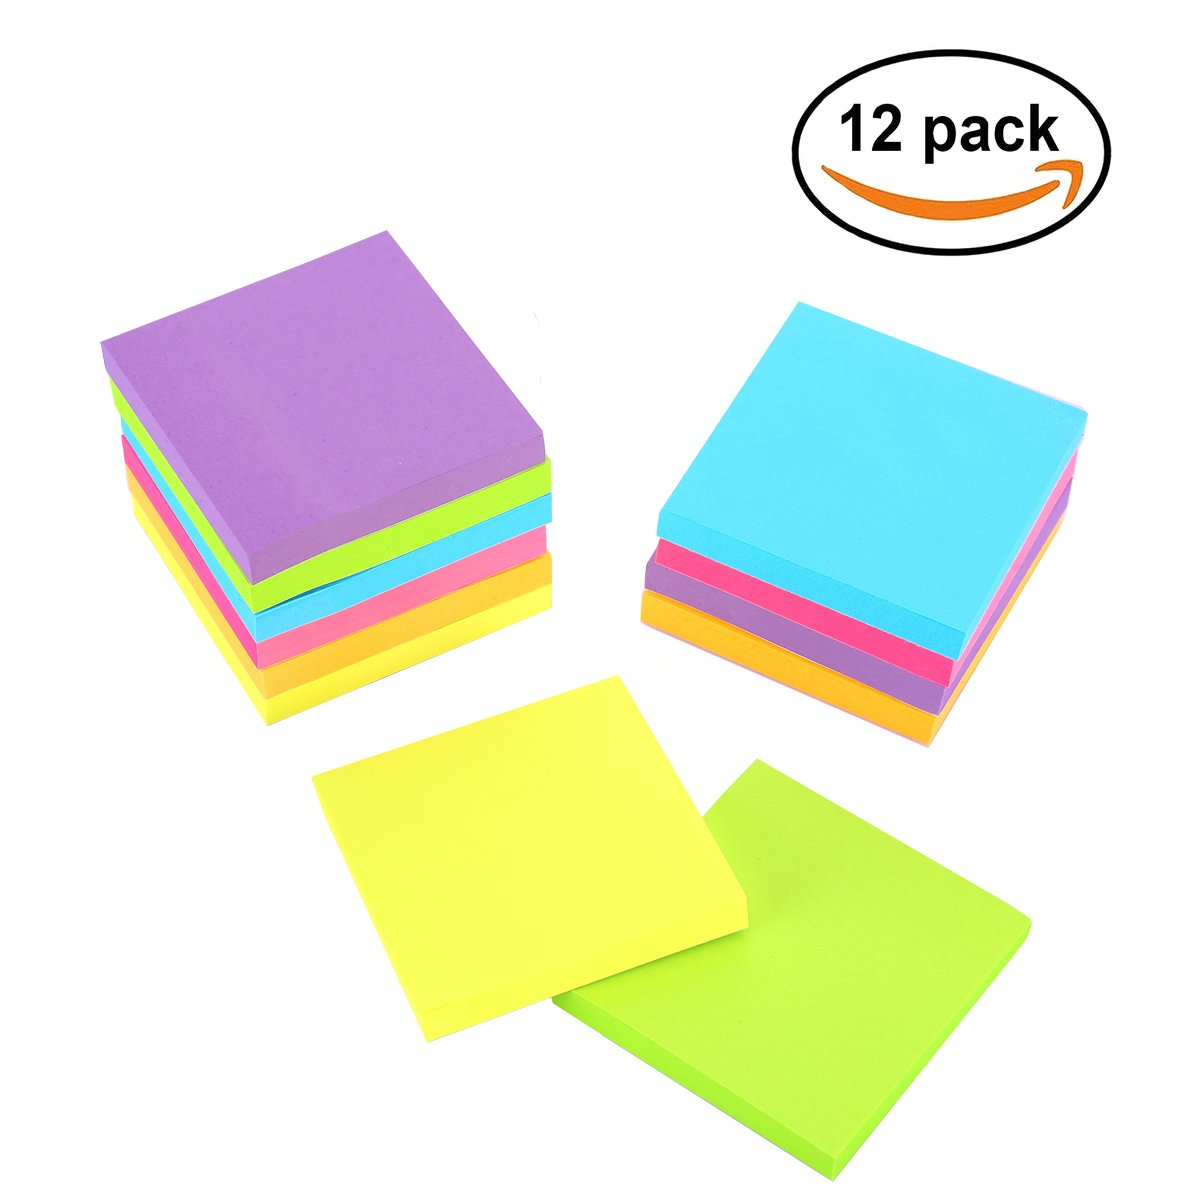 Sticky Notes, 3 in x 3 in, 12 Pads/Pack,100 Sheets/Pad, 6 Bright Colors Self-Stick Notes for Home,Office, School, Easy Post. by ERBAO (Image #2)